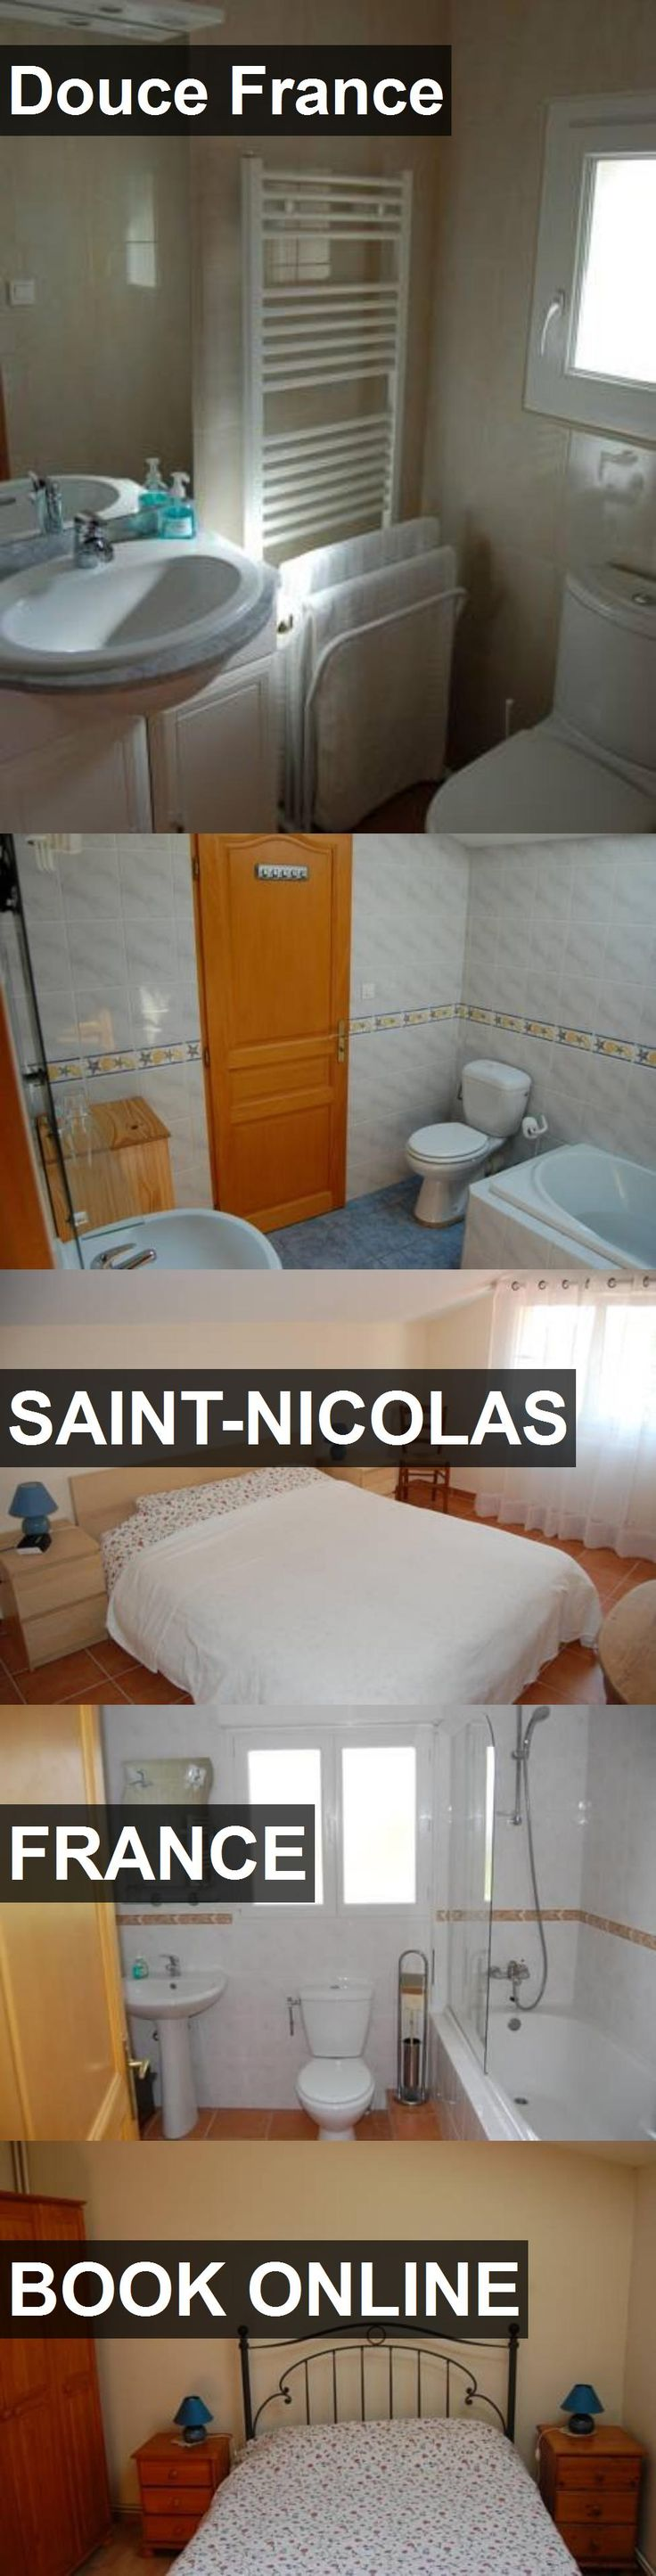 Hotel Douce France in Saint-Nicolas, France. For more information, photos, reviews and best prices please follow the link. #France #Saint-Nicolas #travel #vacation #hotel